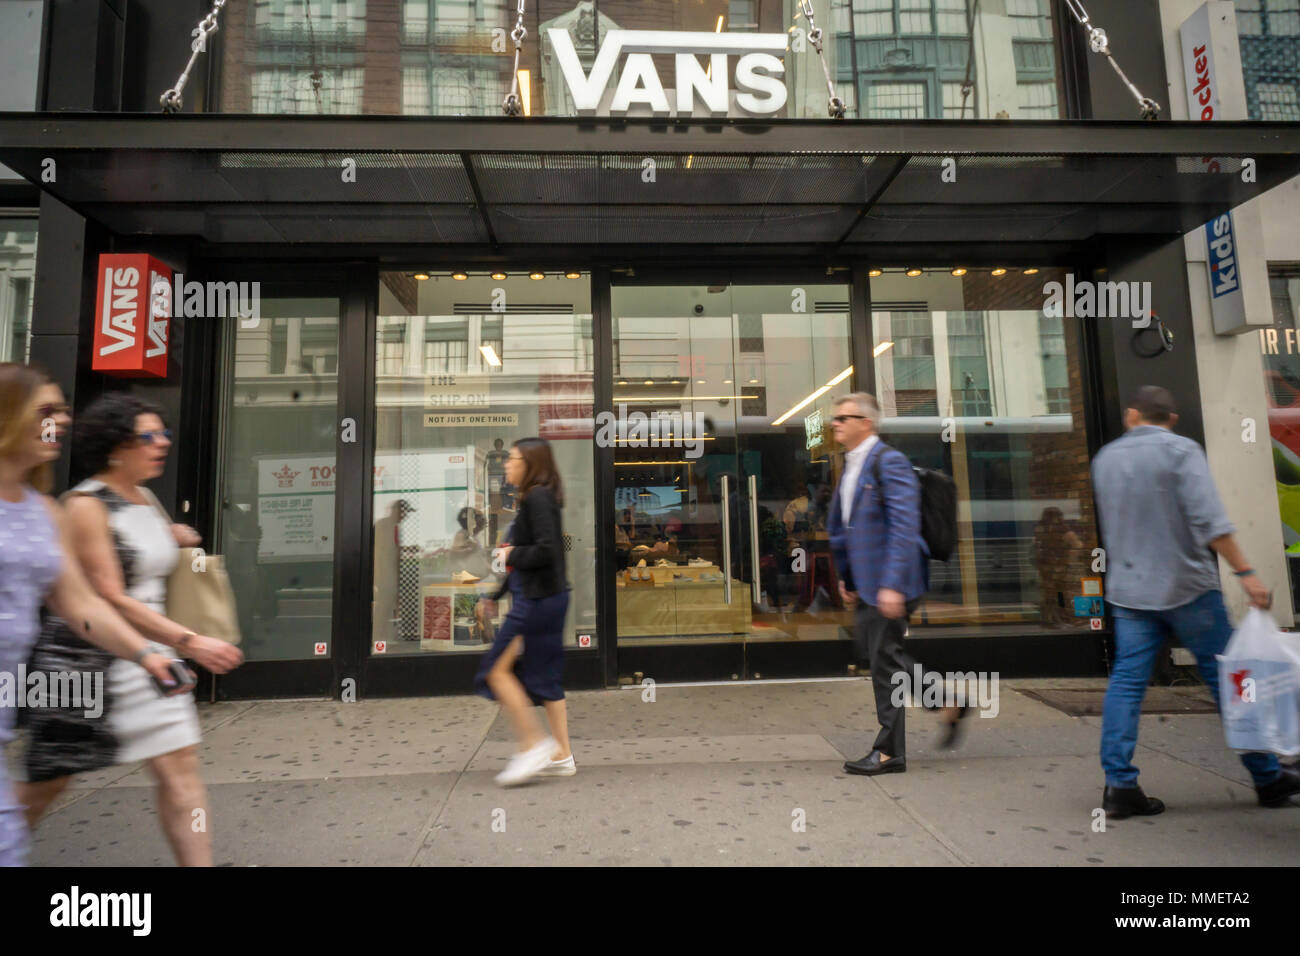 eb8a1f1262 Un magasin de chaussures Vans à Herald Square à New York le vendredi 4 mai  2018